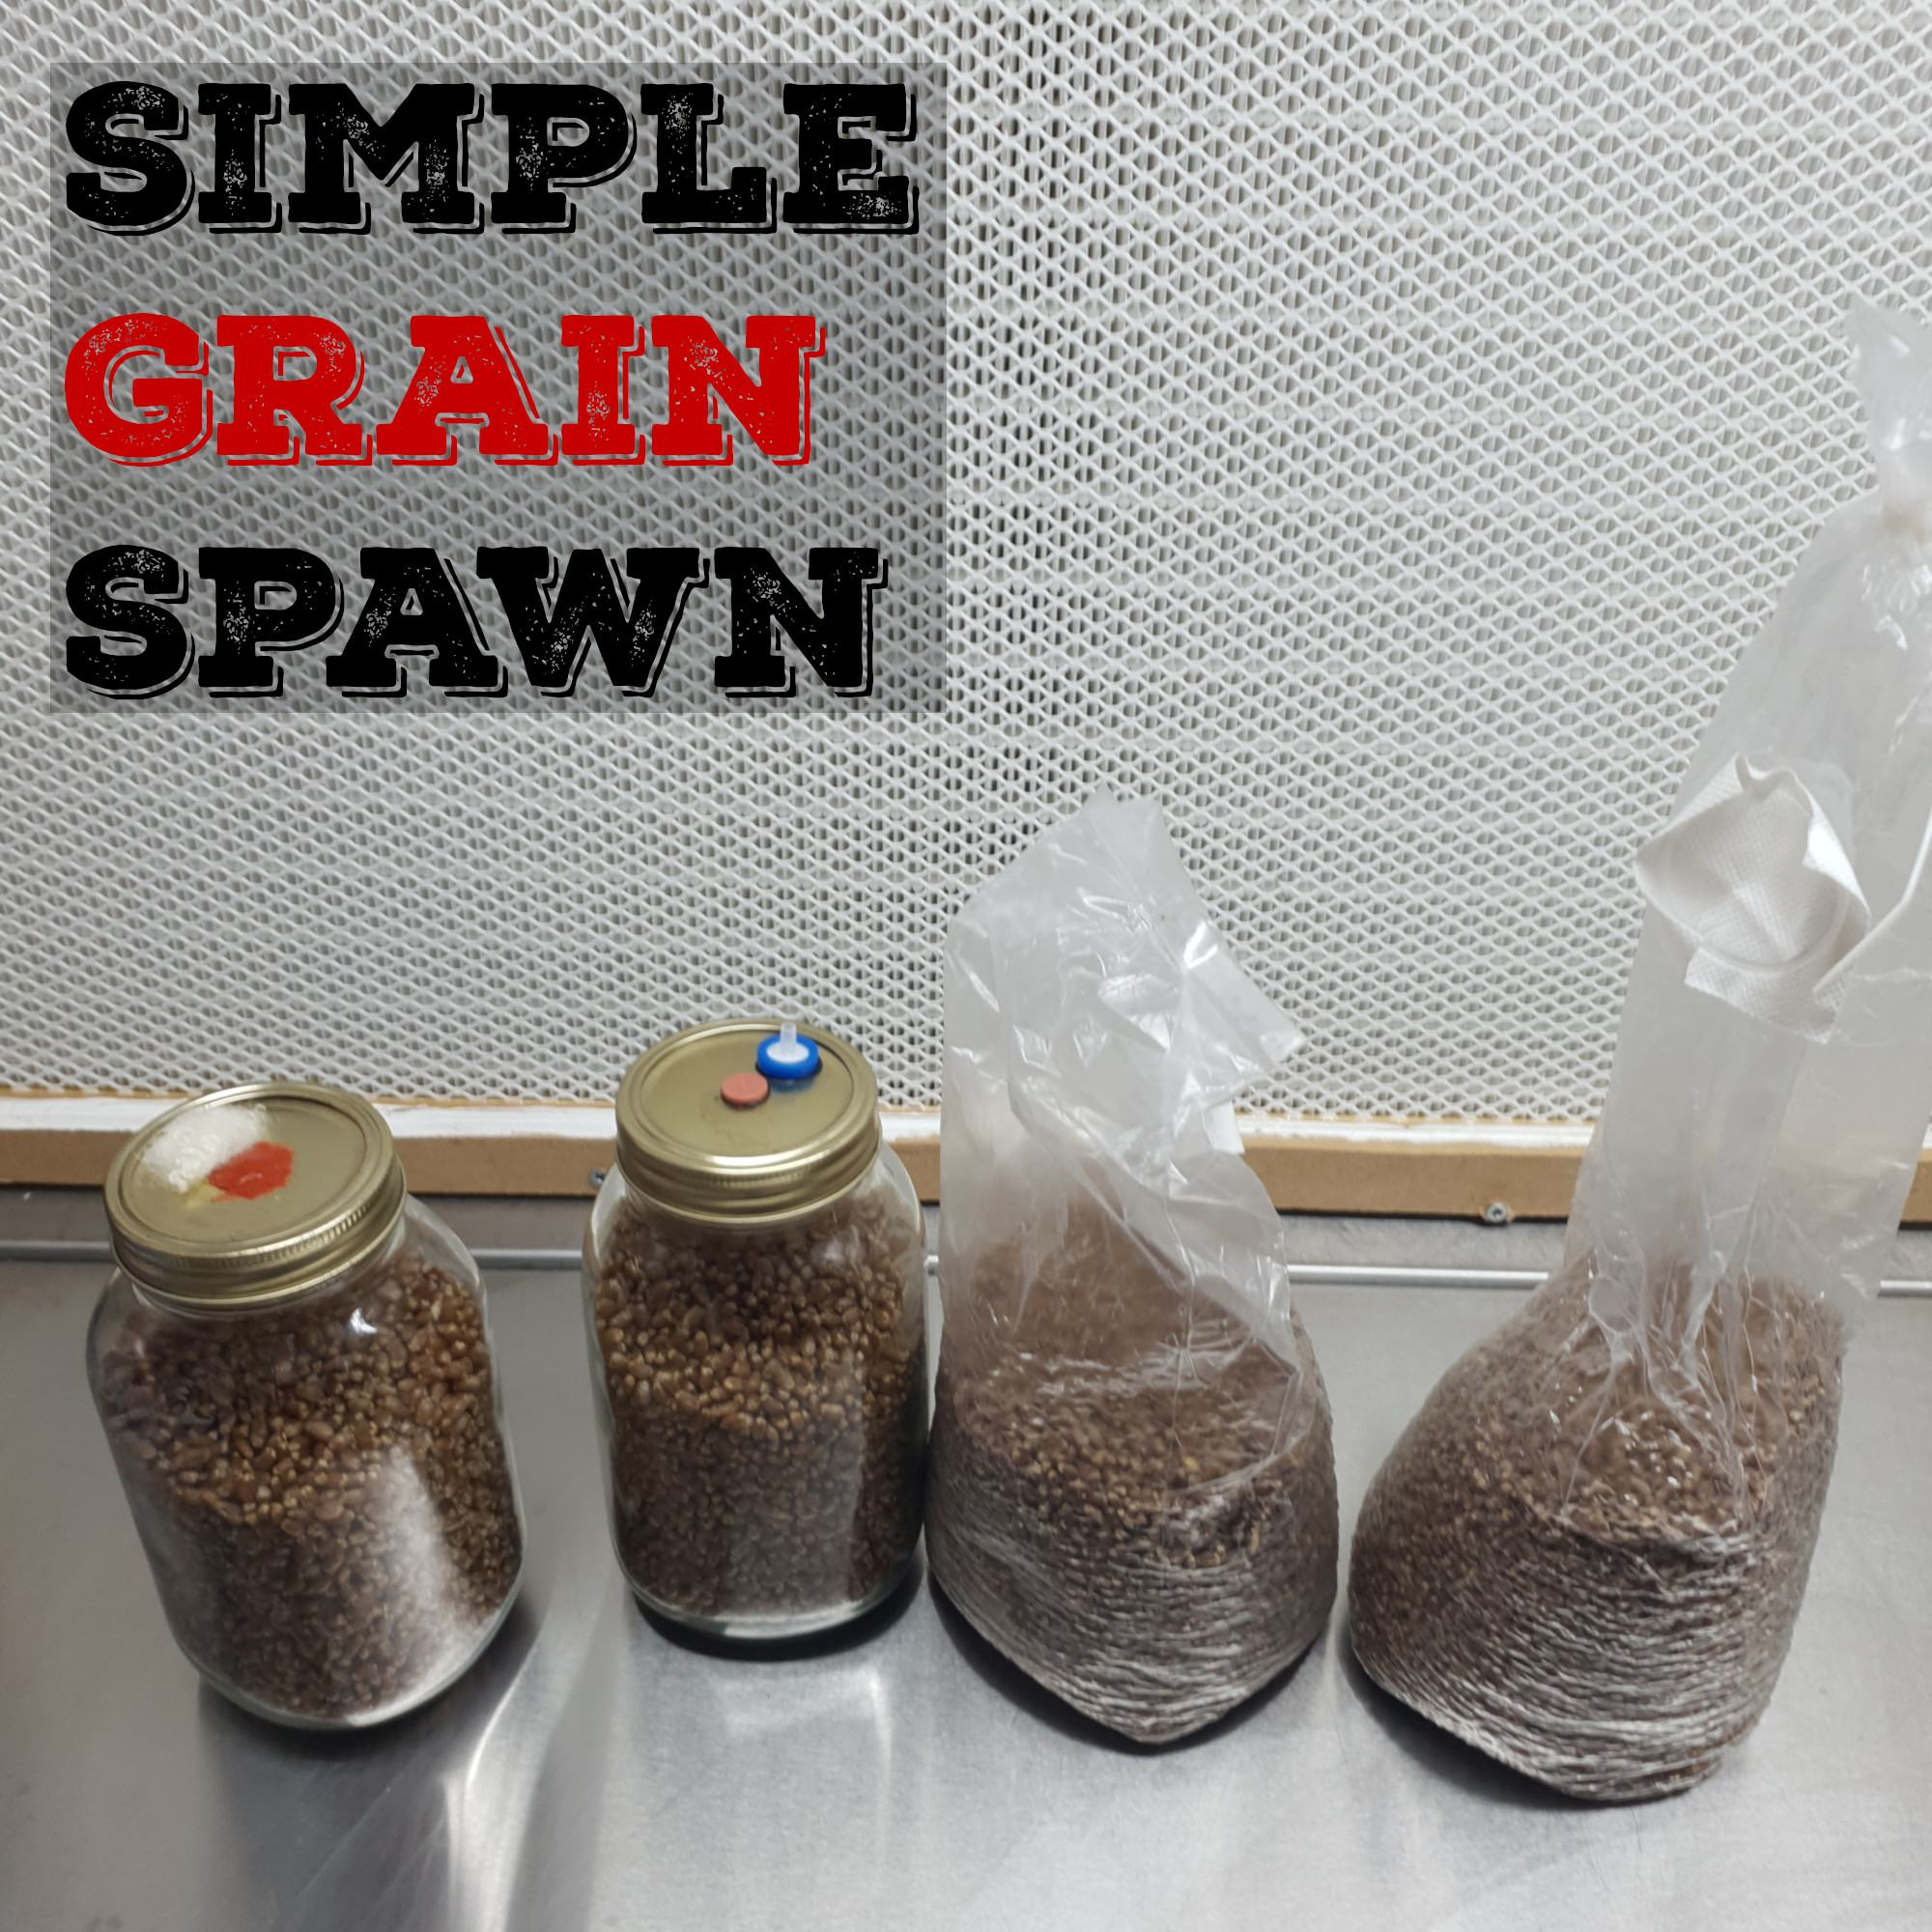 Simple Grain Spawn | Mushroom Grain Spawn | How To Make Mushroom Grain Spawn | Wheat Berry Spawn | Archers Mushrooms | Mushroom Blogs | Mushroom Growing | Mushroom Tips | Mushroom Business